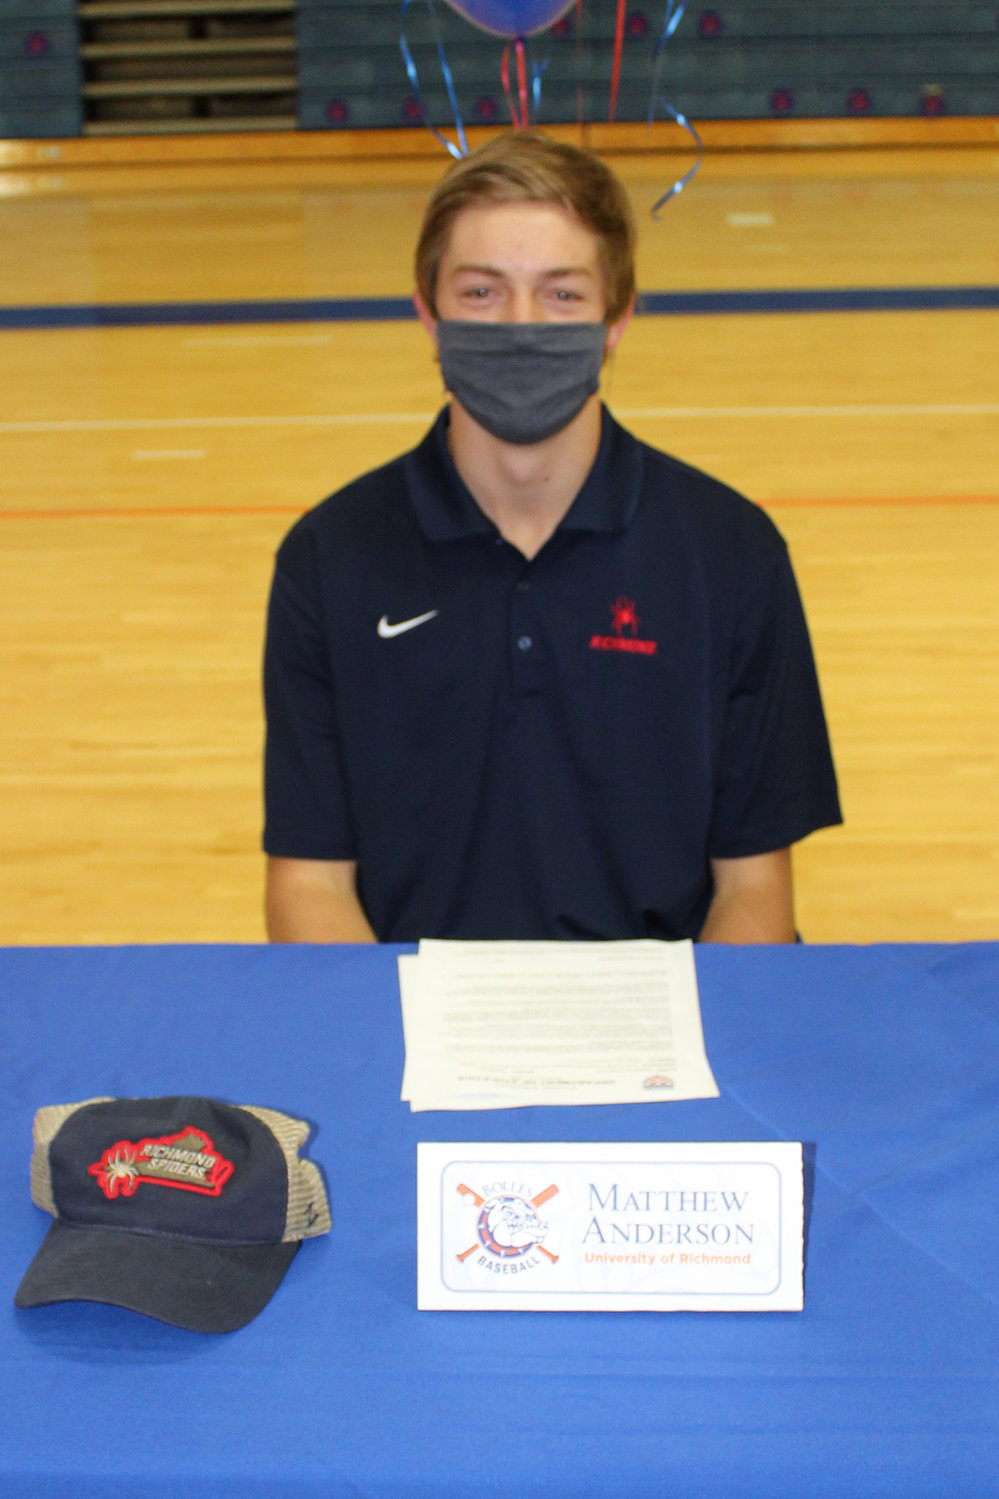 Baseball player Matthew Anderson has committed to the University of Richmond